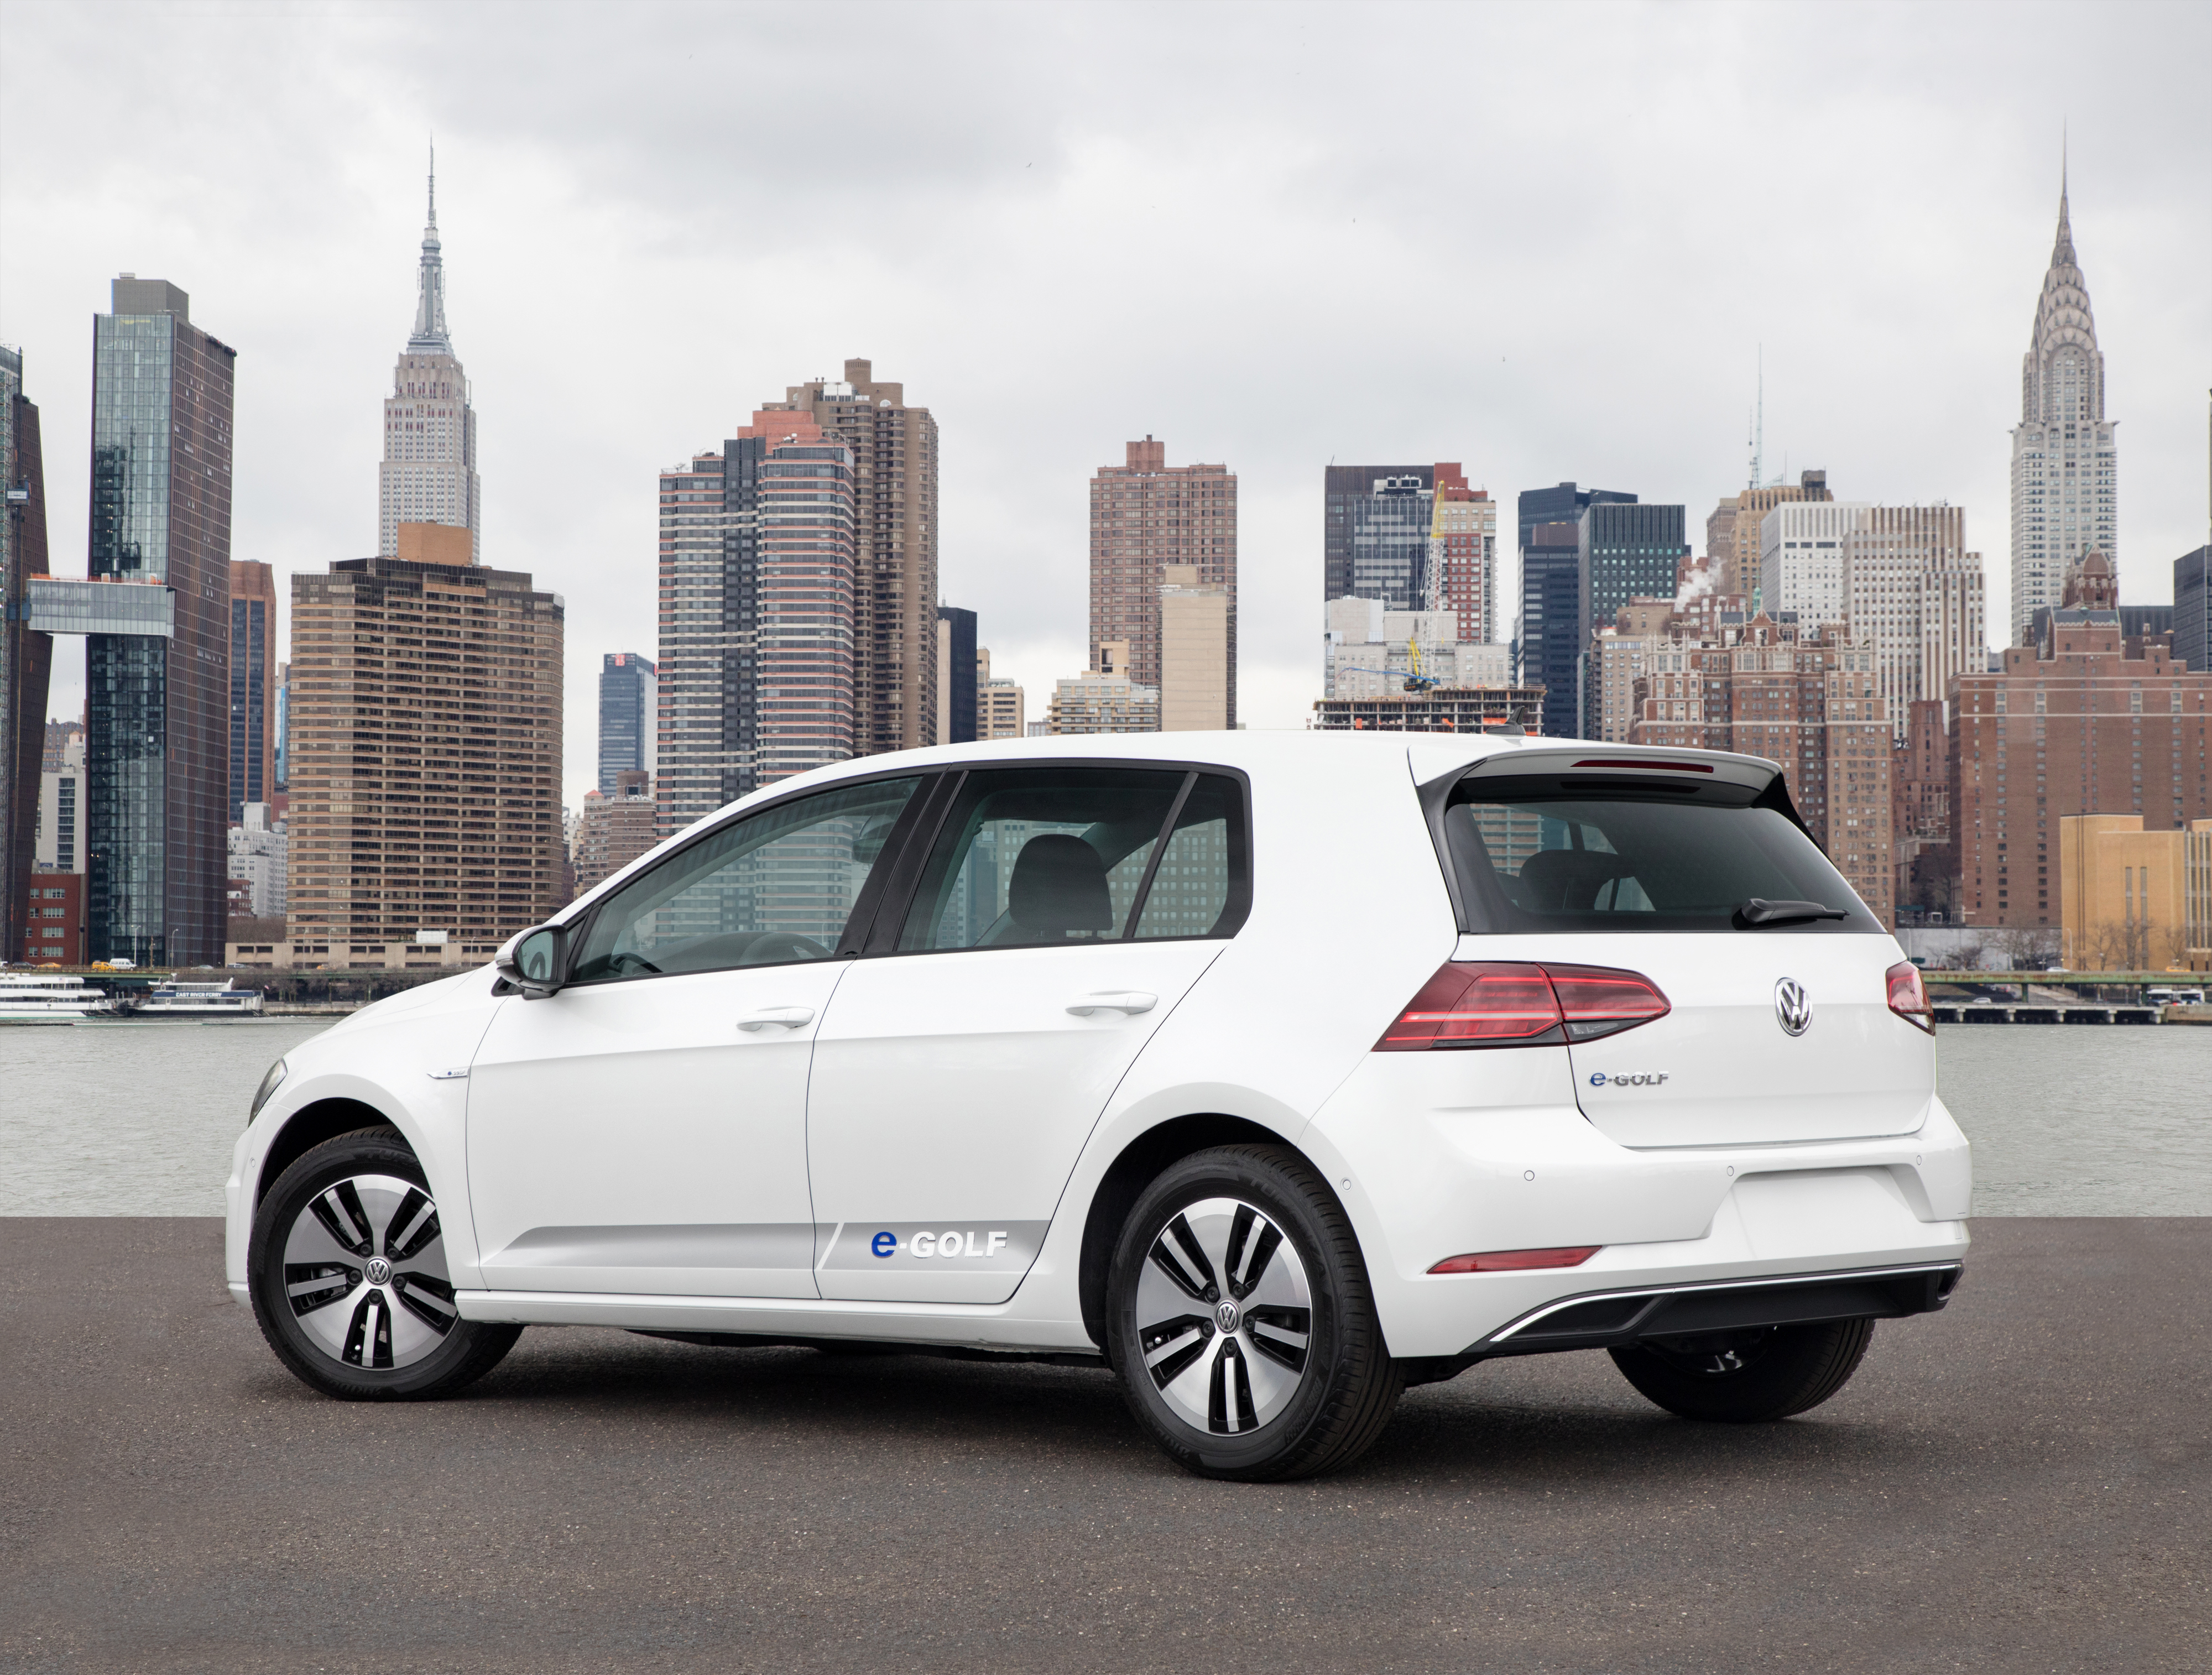 2017 Vw E Golf Finally Launches With Pricing In The Us Electrek